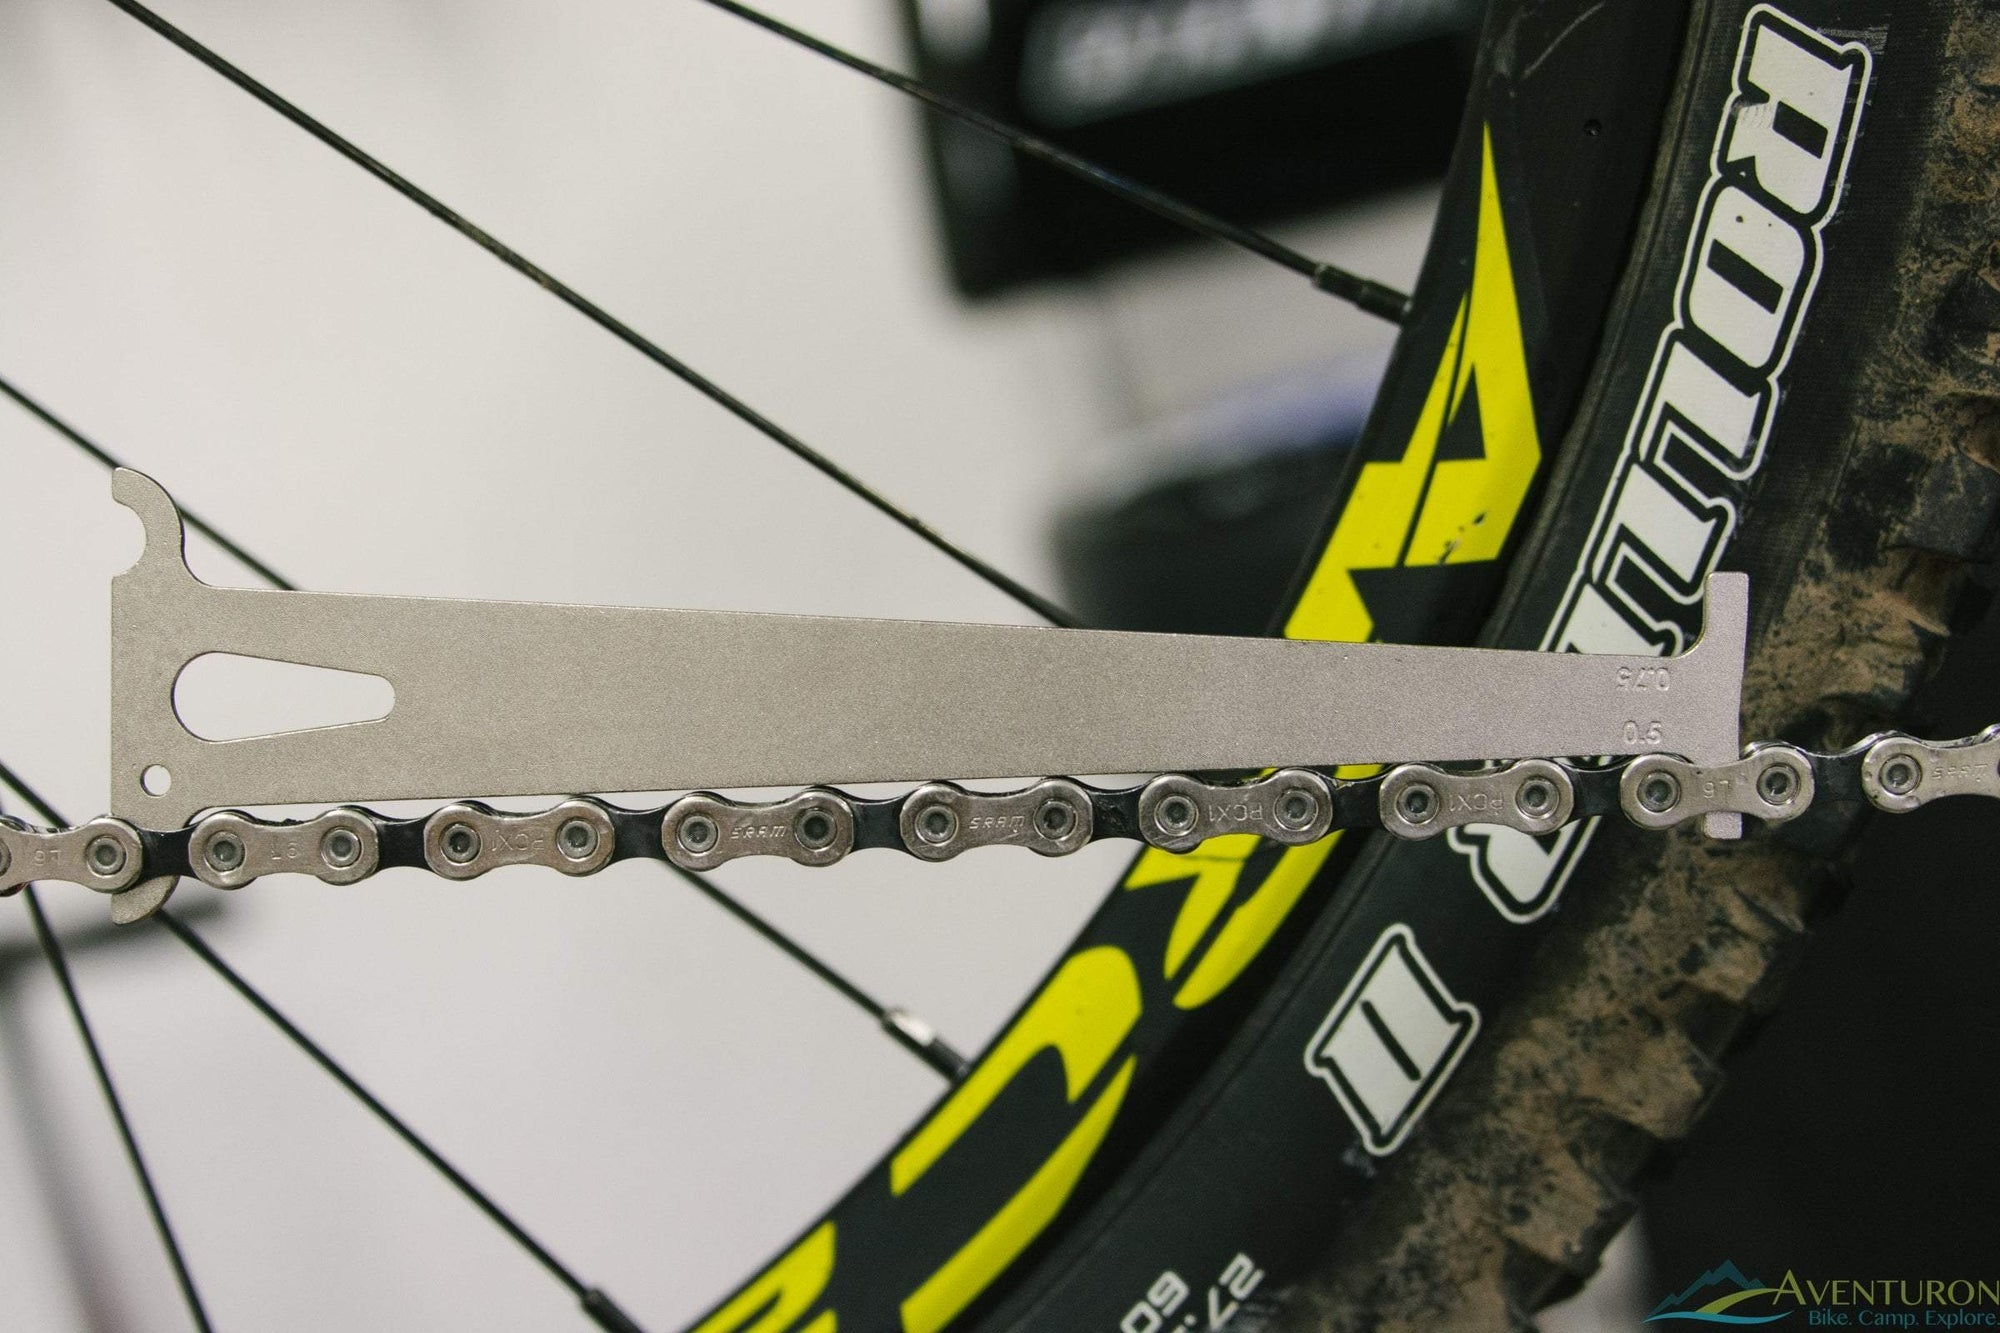 Is it time for a new chain? Find out quickly with the Park Tool CC-3.2 Chain Wear Indicator